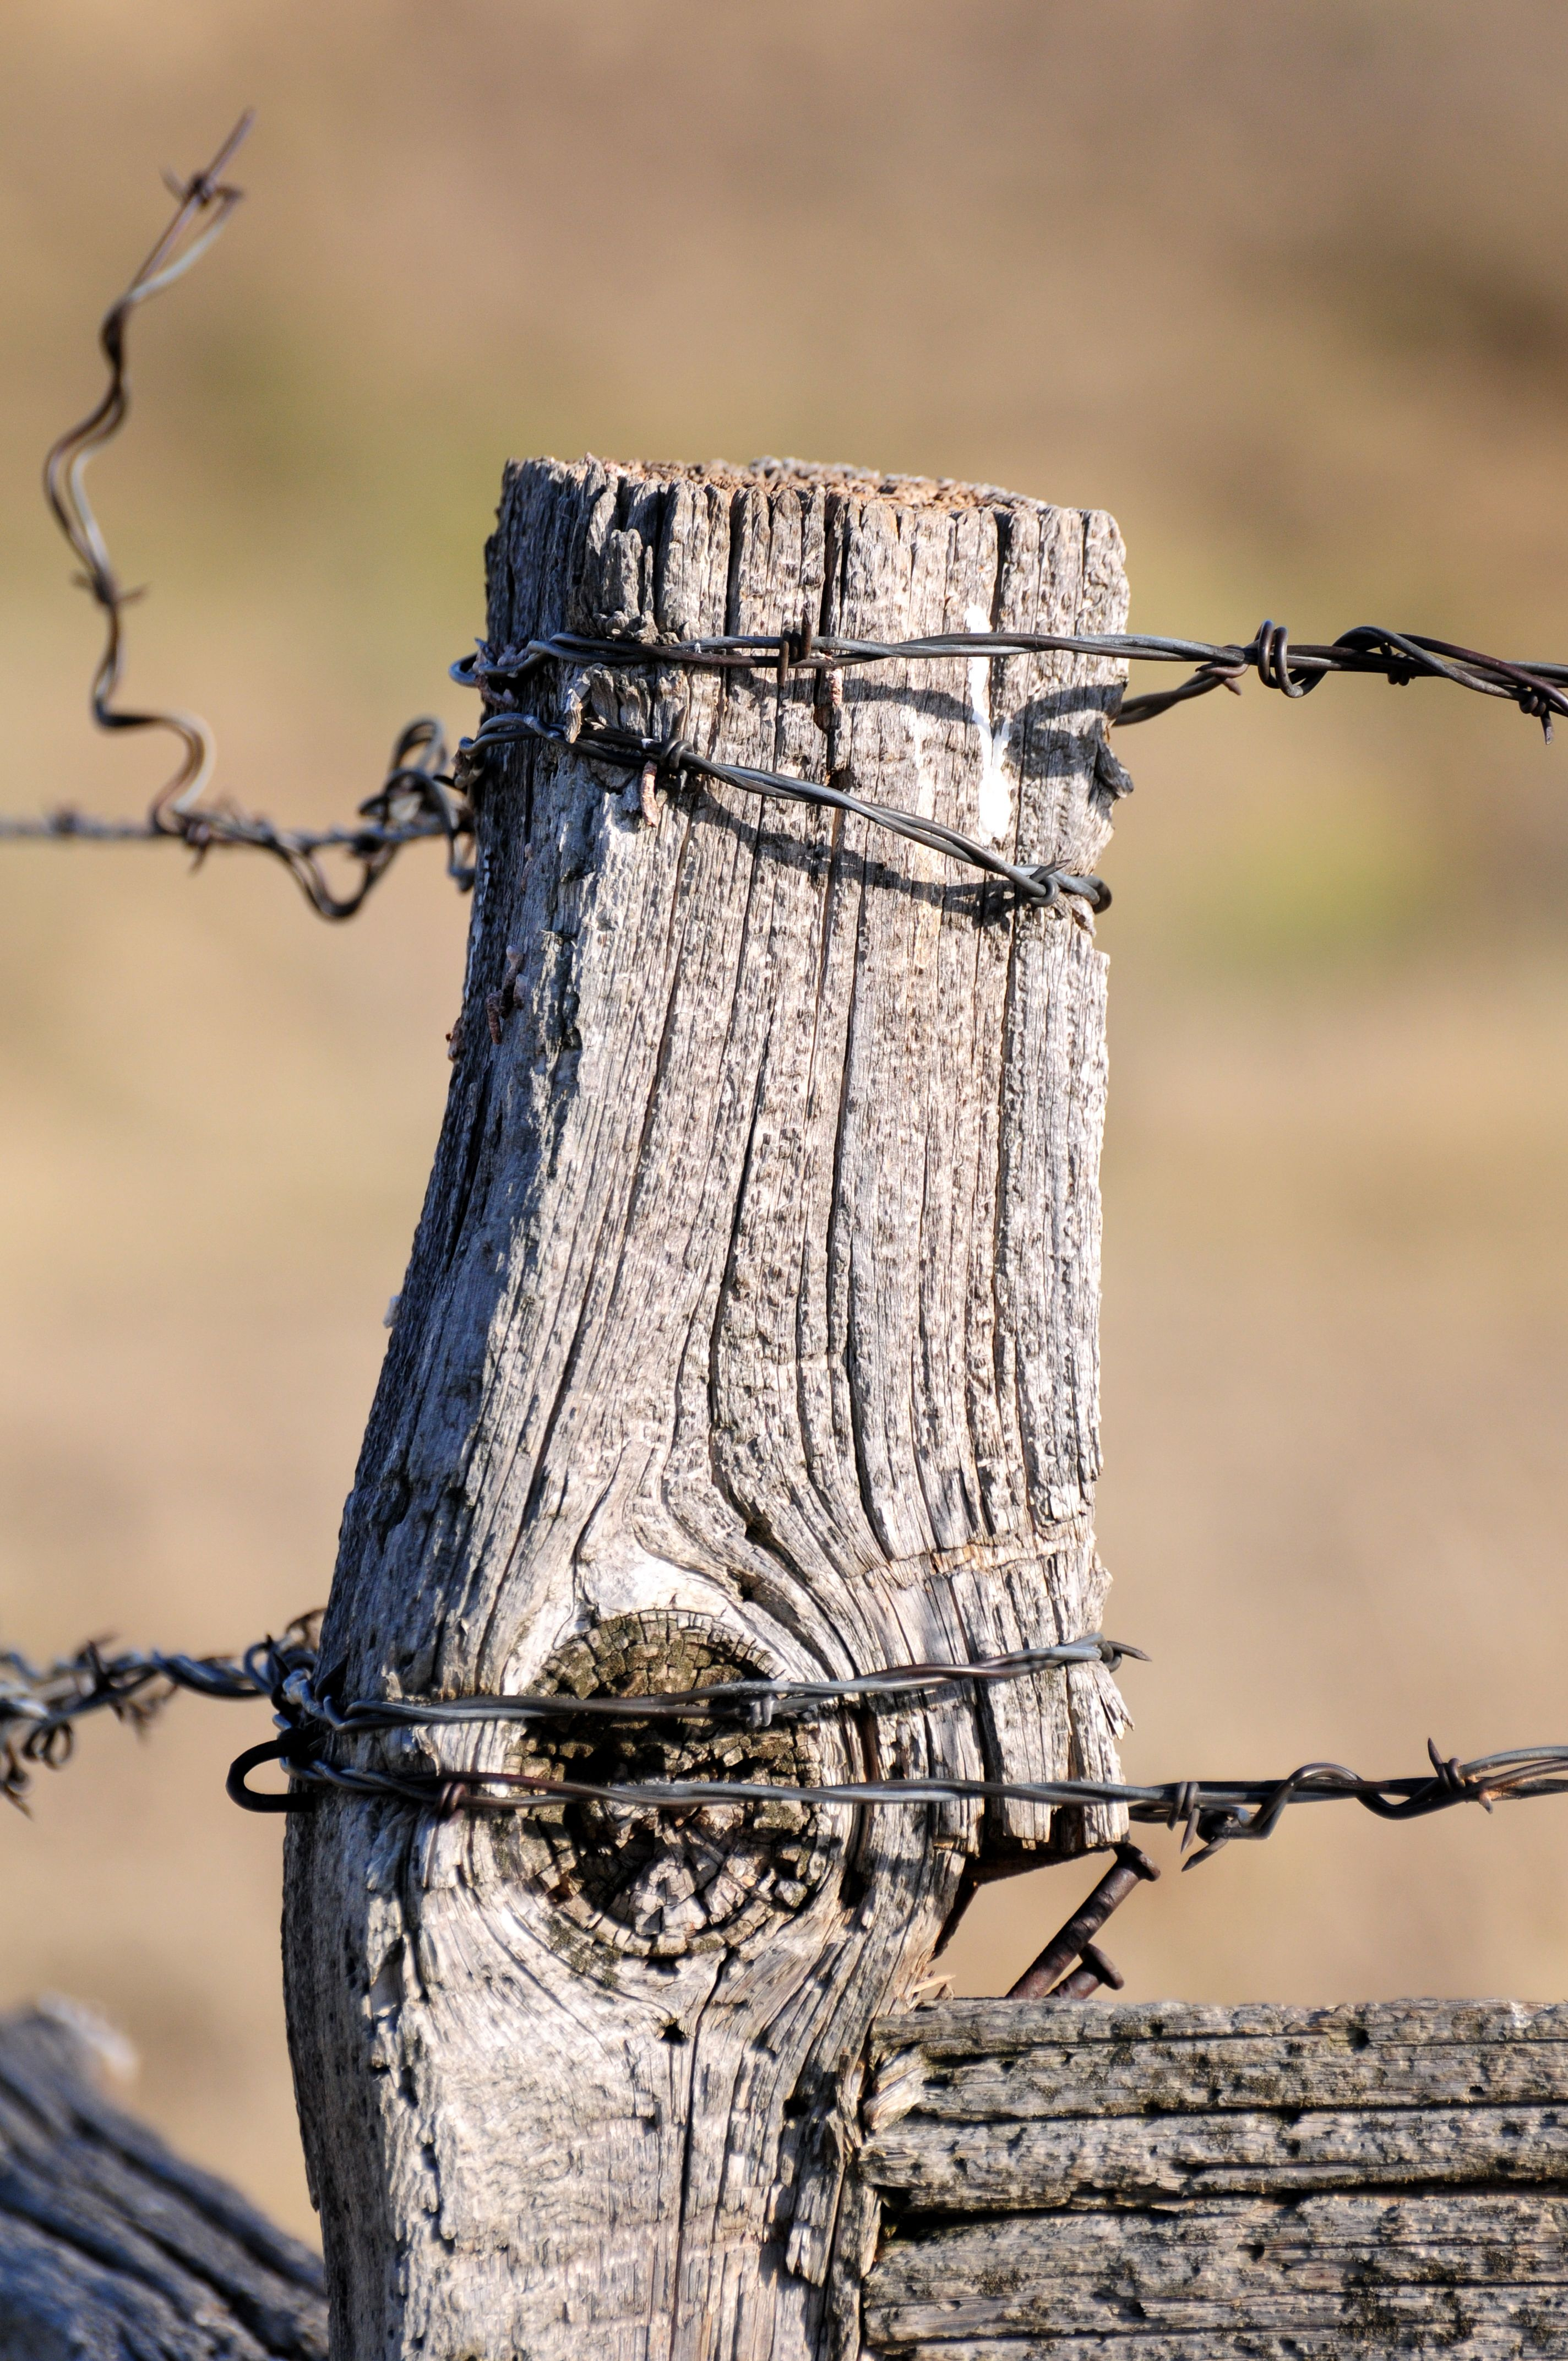 Old Fence Post With Barbed Wire Is A Strong Memory From My